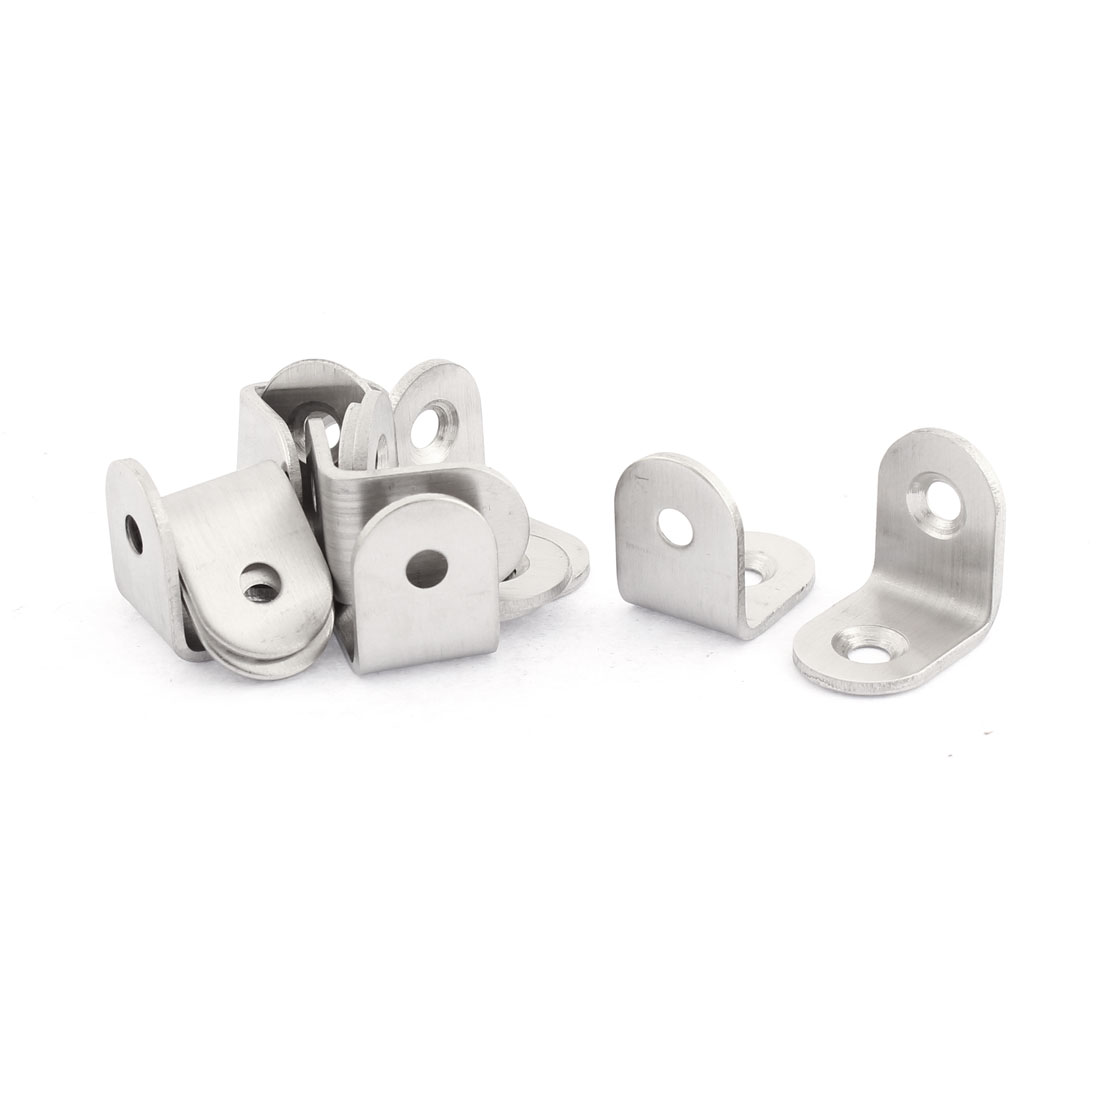 Stainless Steel Right Angle Corner Bracket 20 x 20mm 12pcs